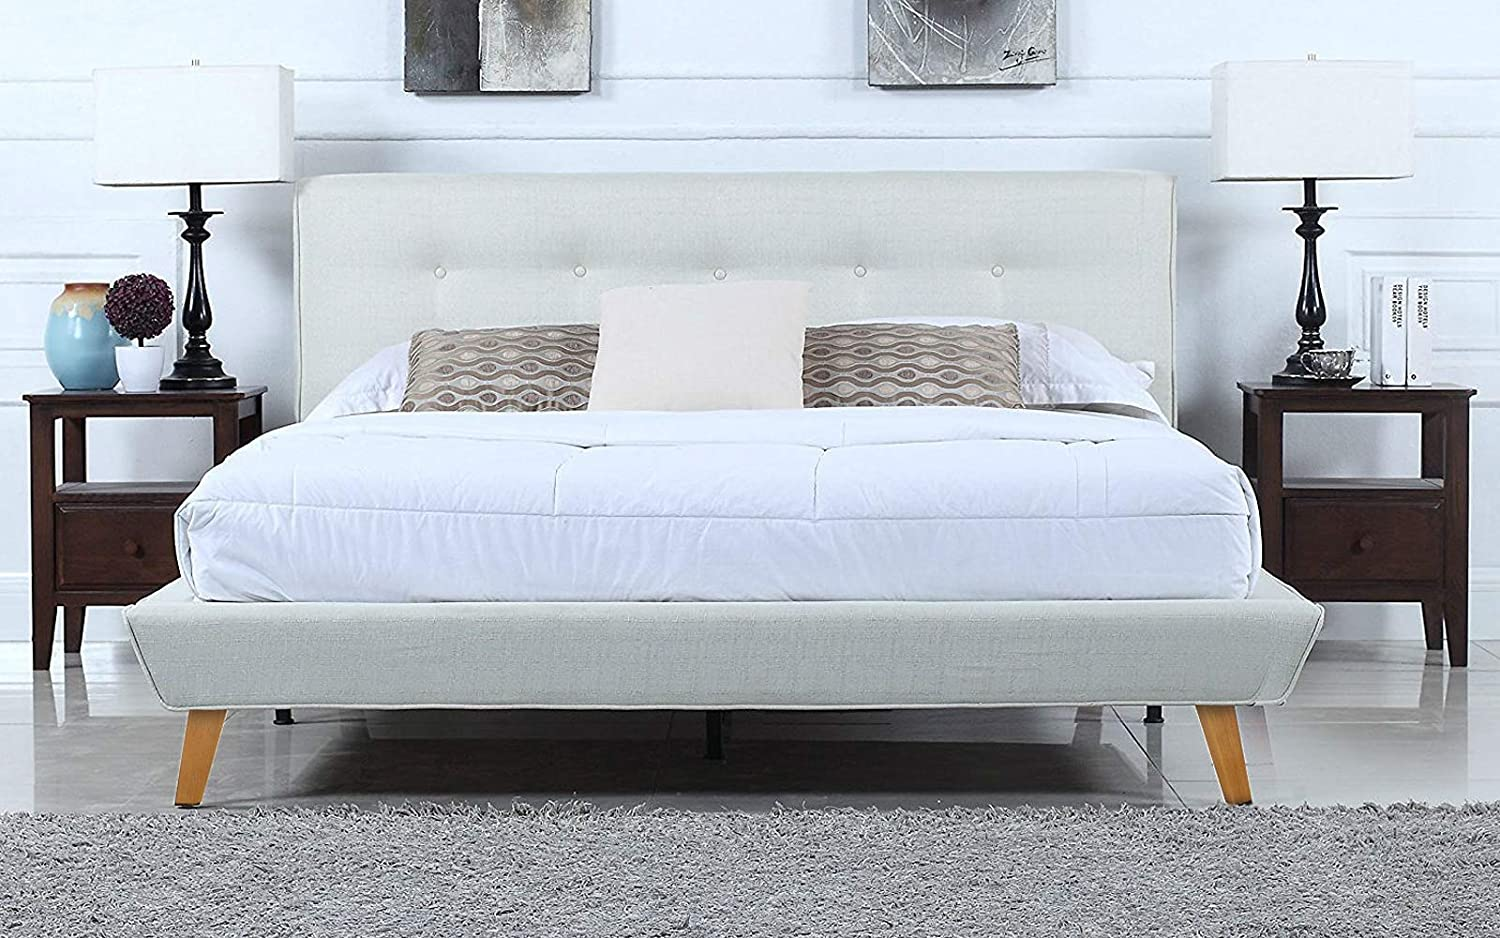 Mid-Century Ivory Linen Low Profile Platform Bed Frame with Tufted Headboard Design (Queen)